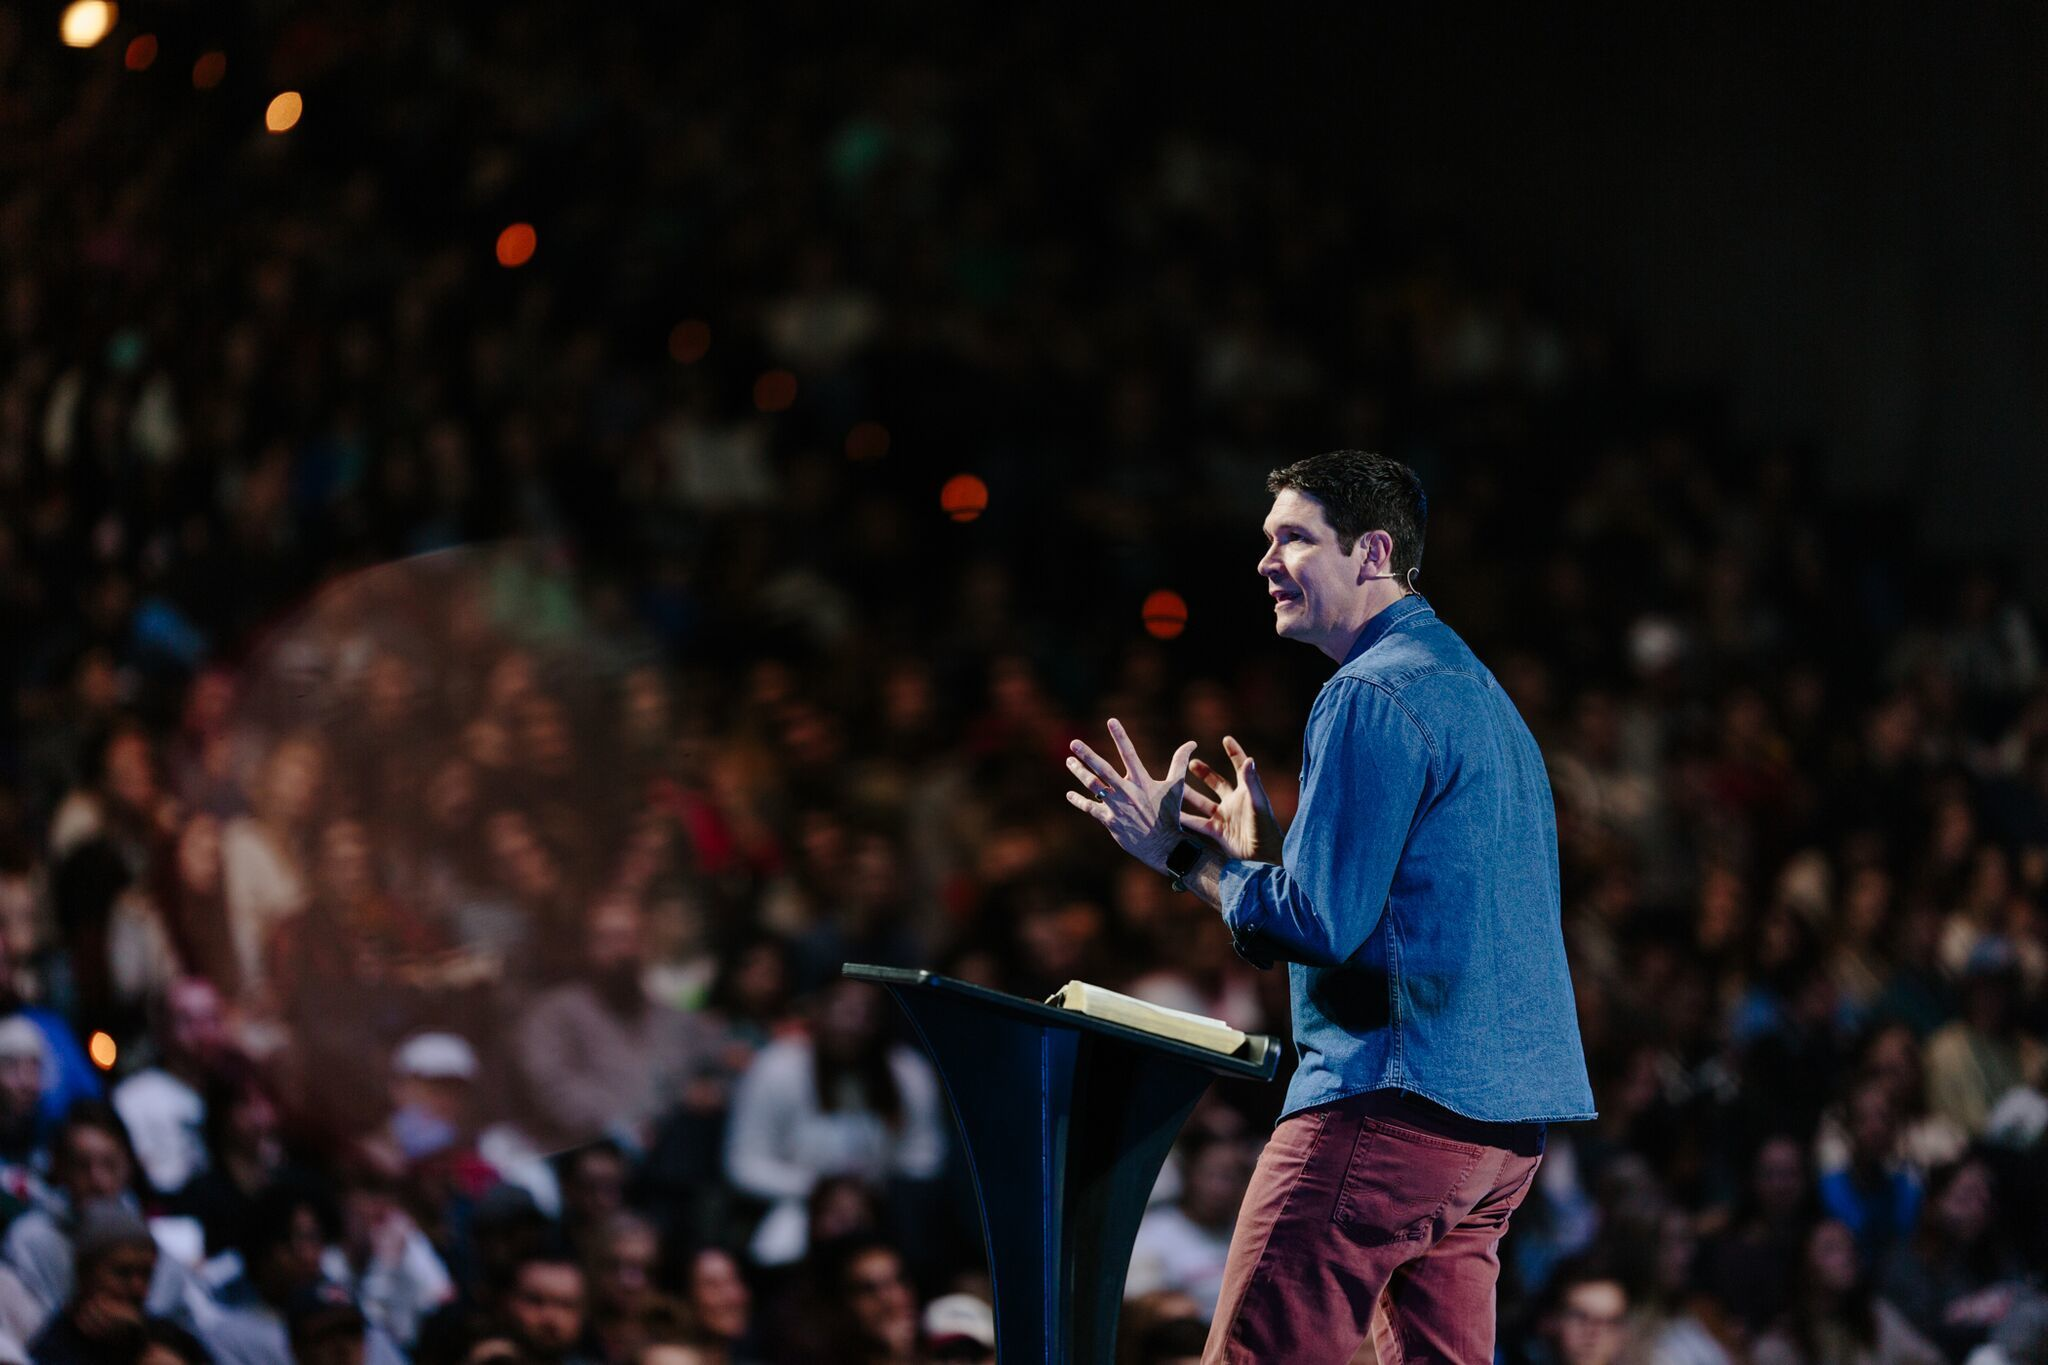 Matt Chandler warns Church is no longer about discipleship but 'being entertained'